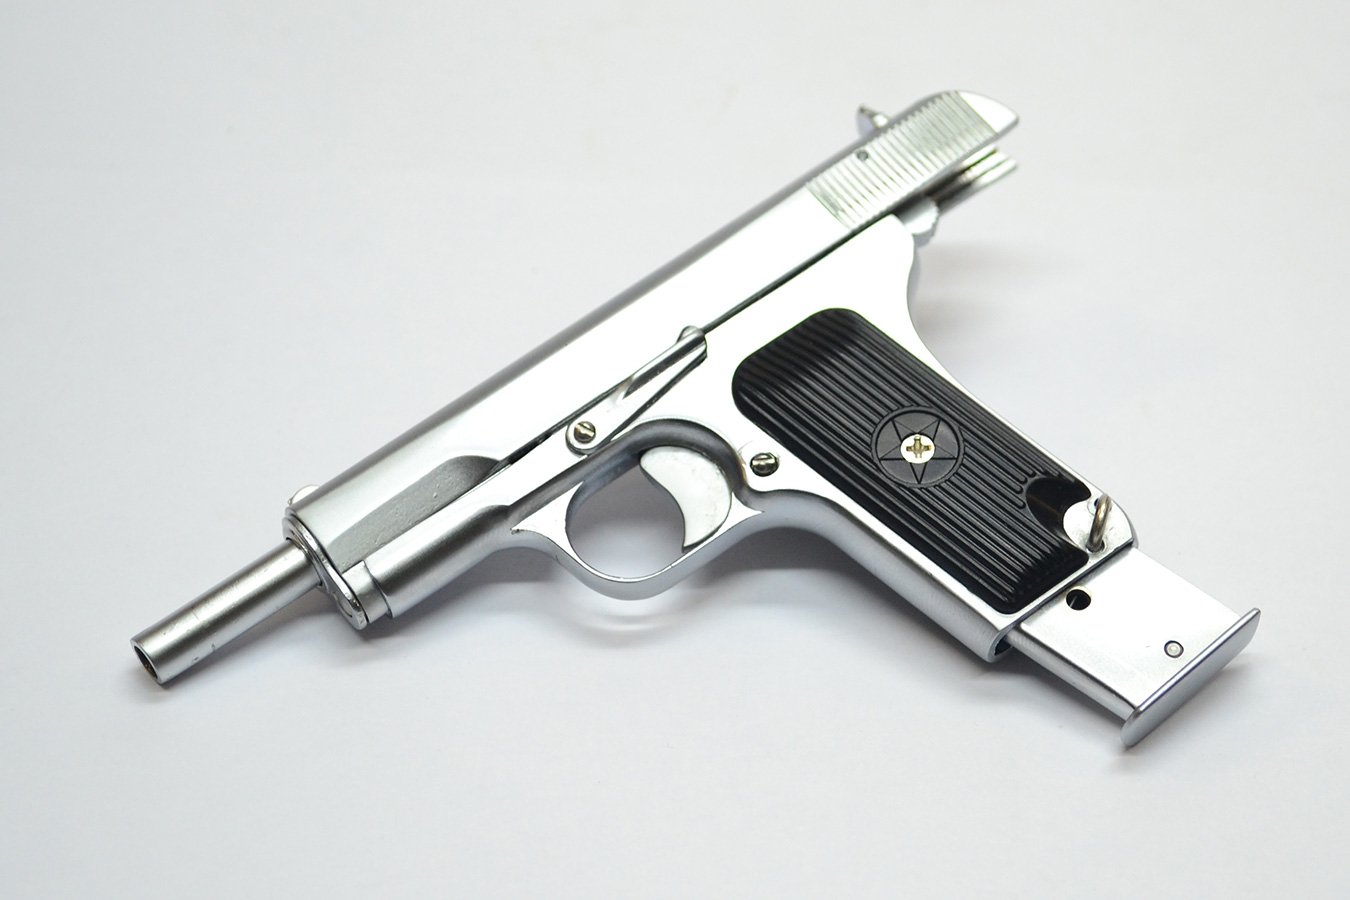 Model TT Tulsky Tokarev 1930 scale 1:2